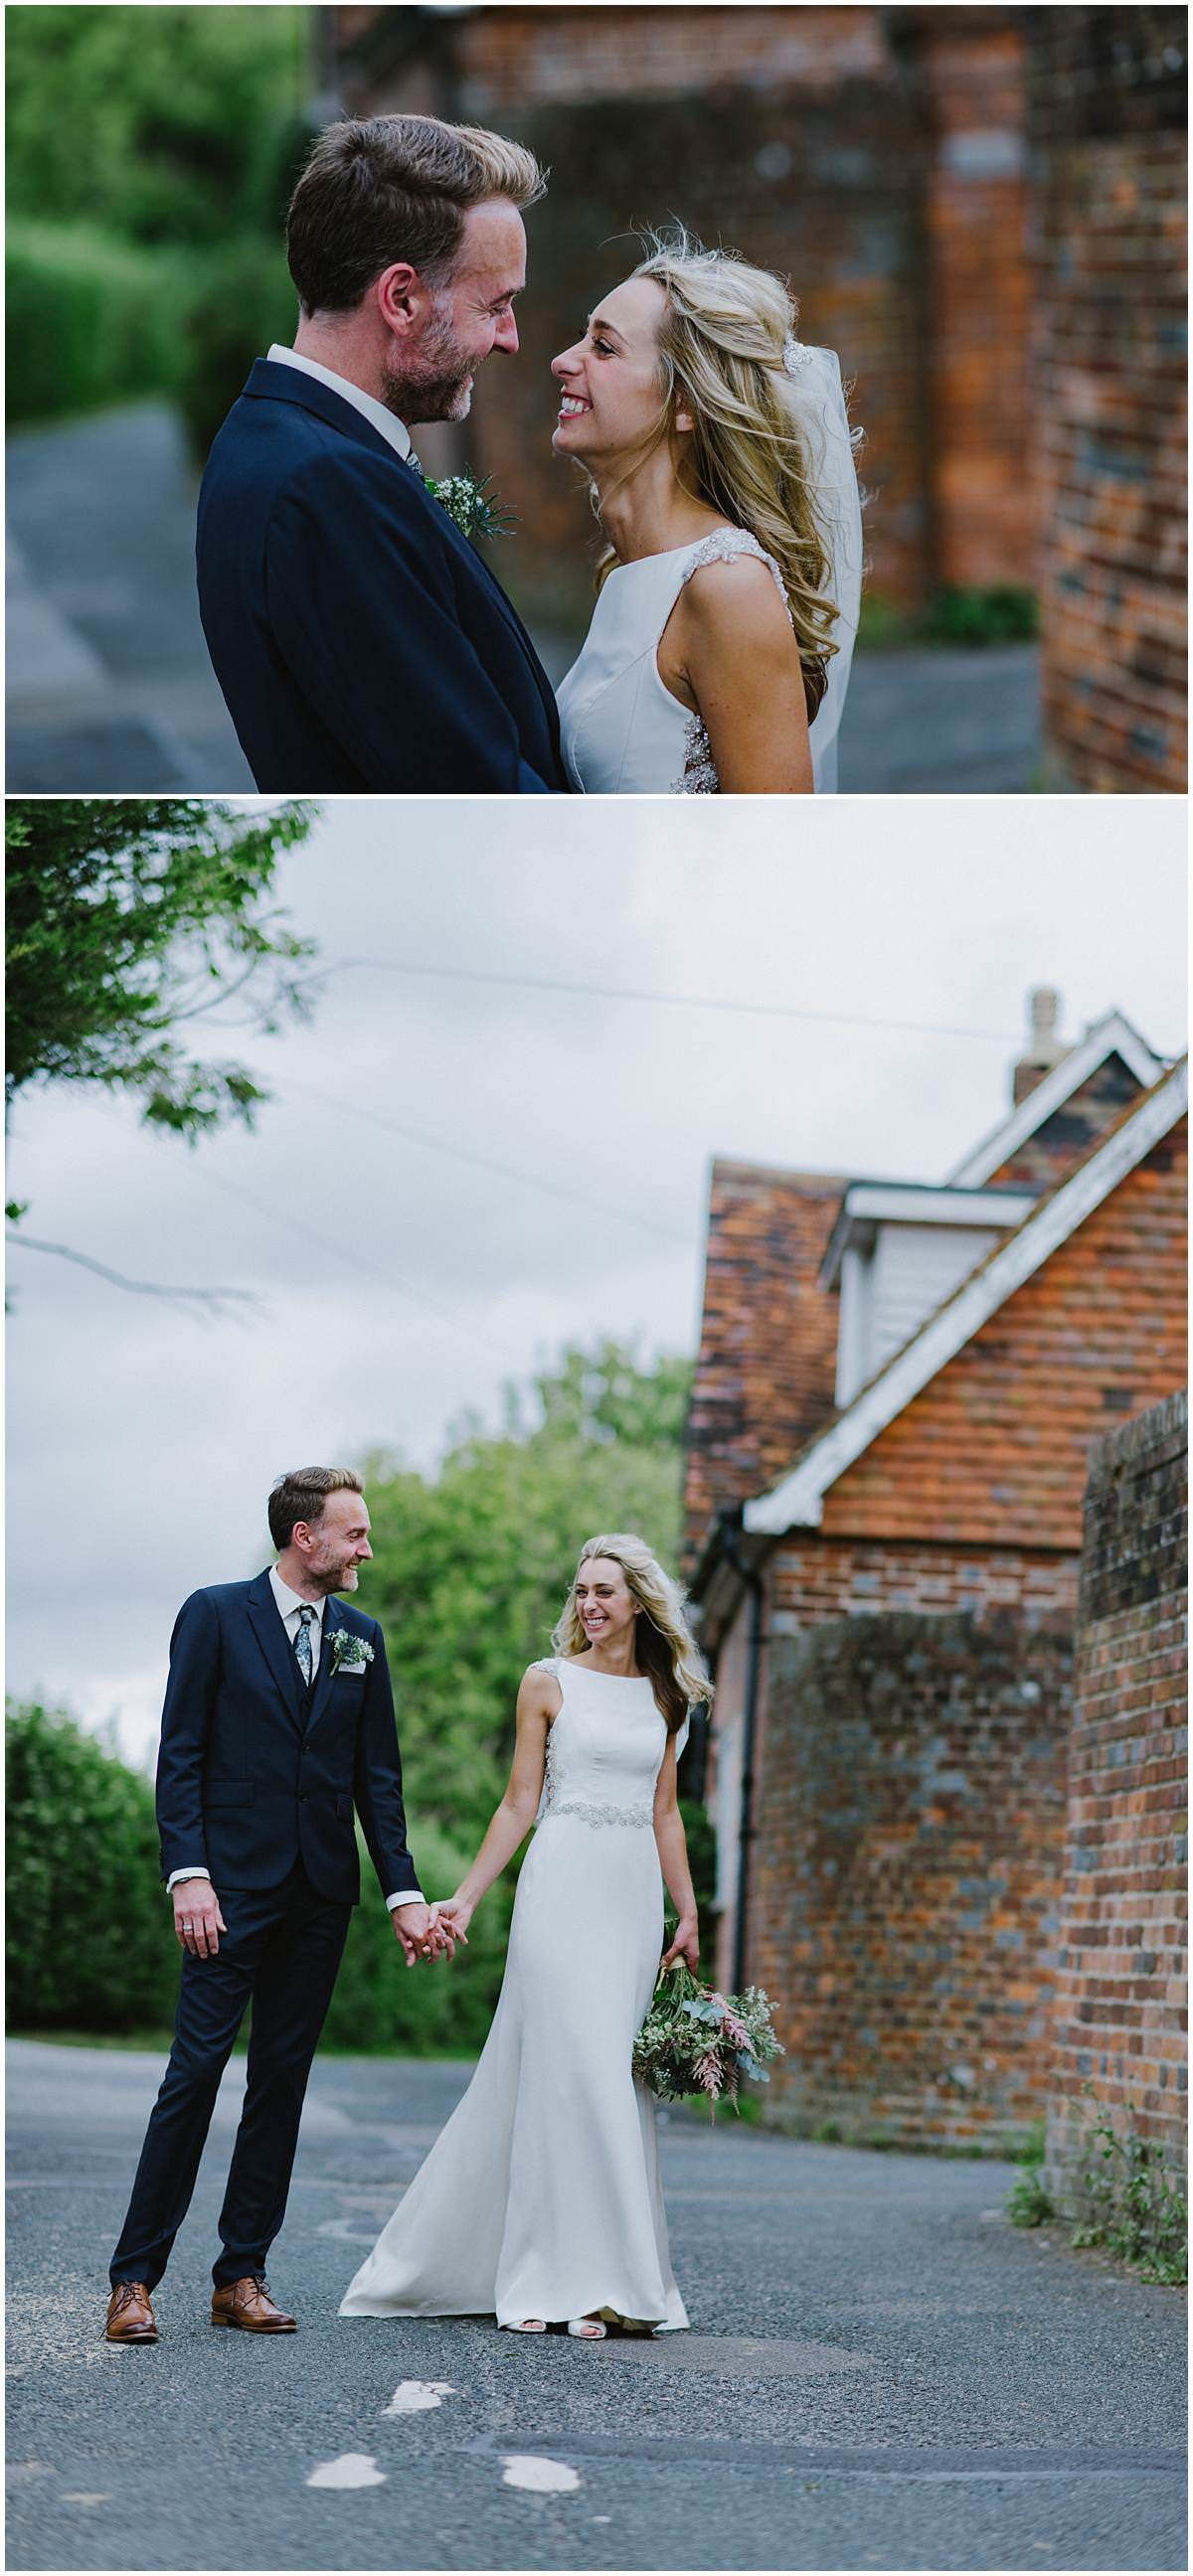 weddings at The bell in Ticehurst